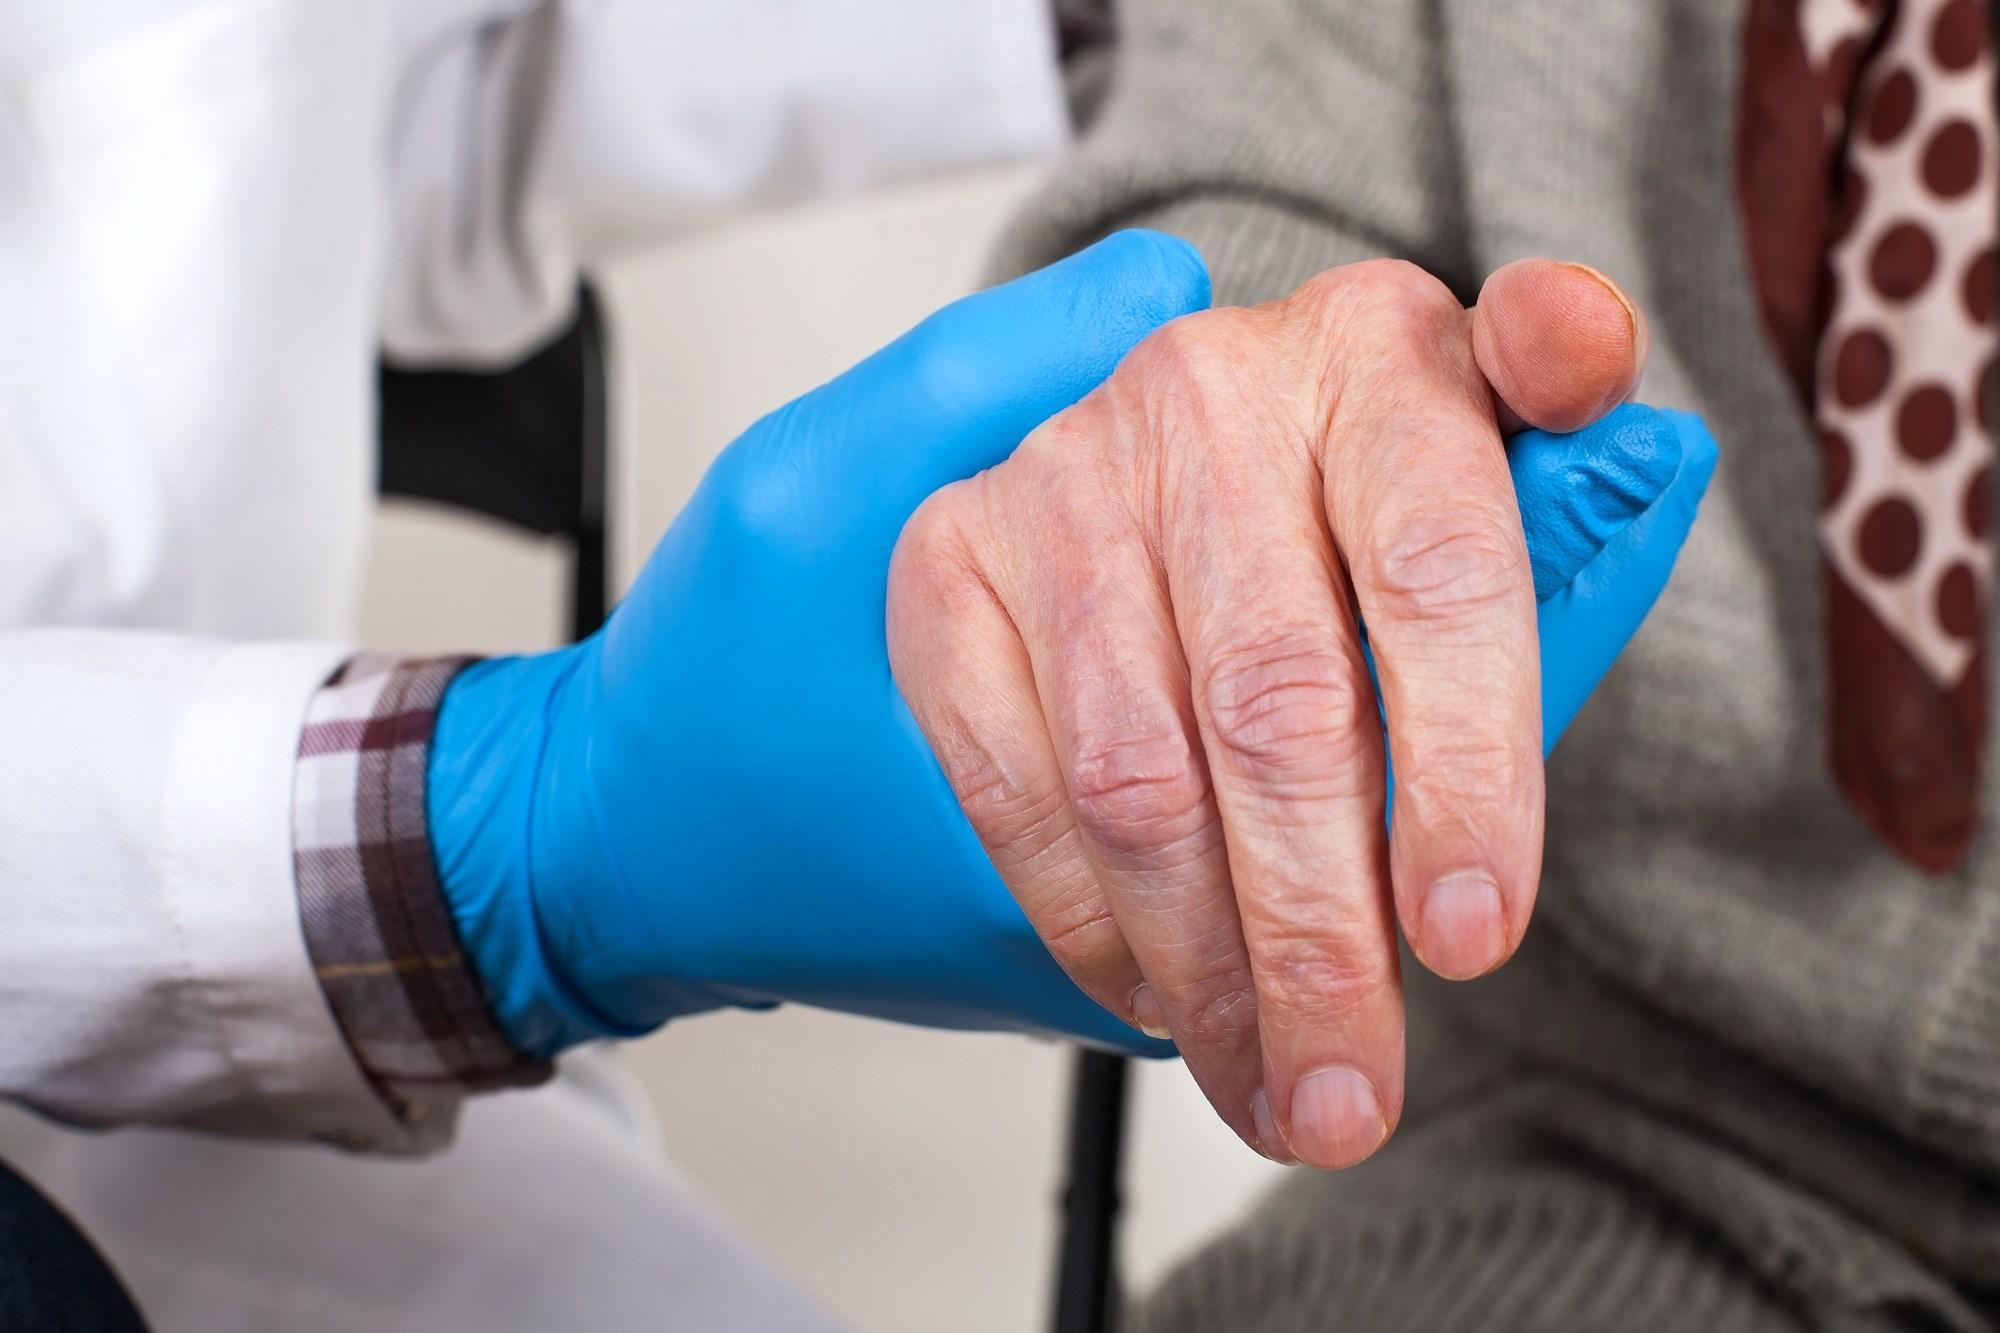 Investigators sought to classify the distinctive differences between essential tremor and Parkinson disease, as they are commonly confused because they are both associated with tremors.